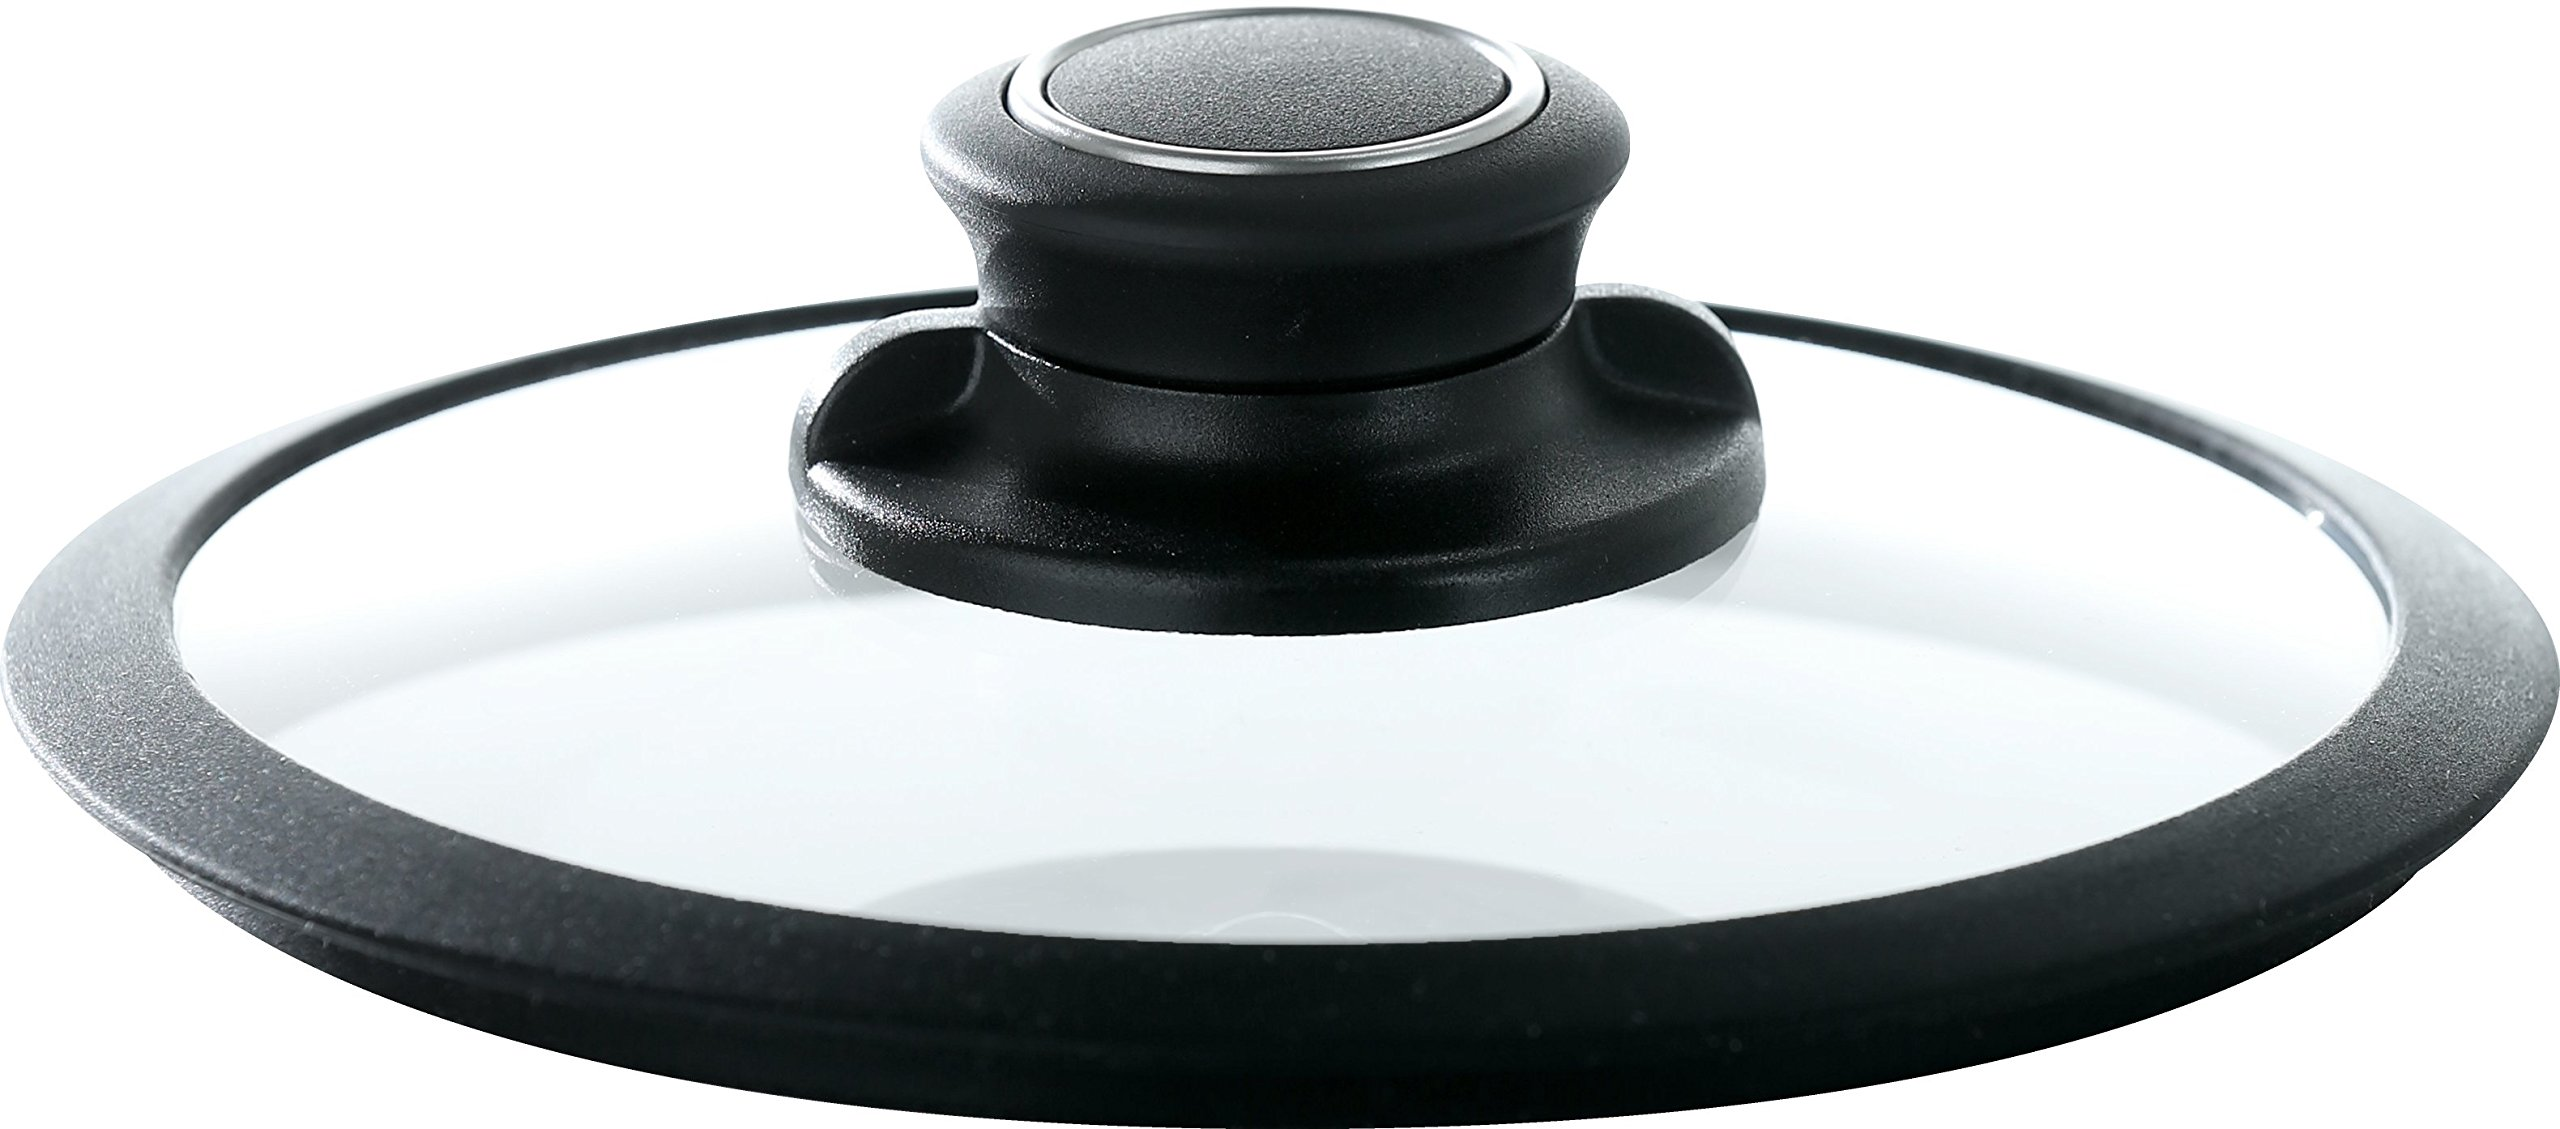 Frieling USA Black Cube Hybrid Stainless/Nonstick Cookware Tempered Glass Lid, 8-Inch Diameter